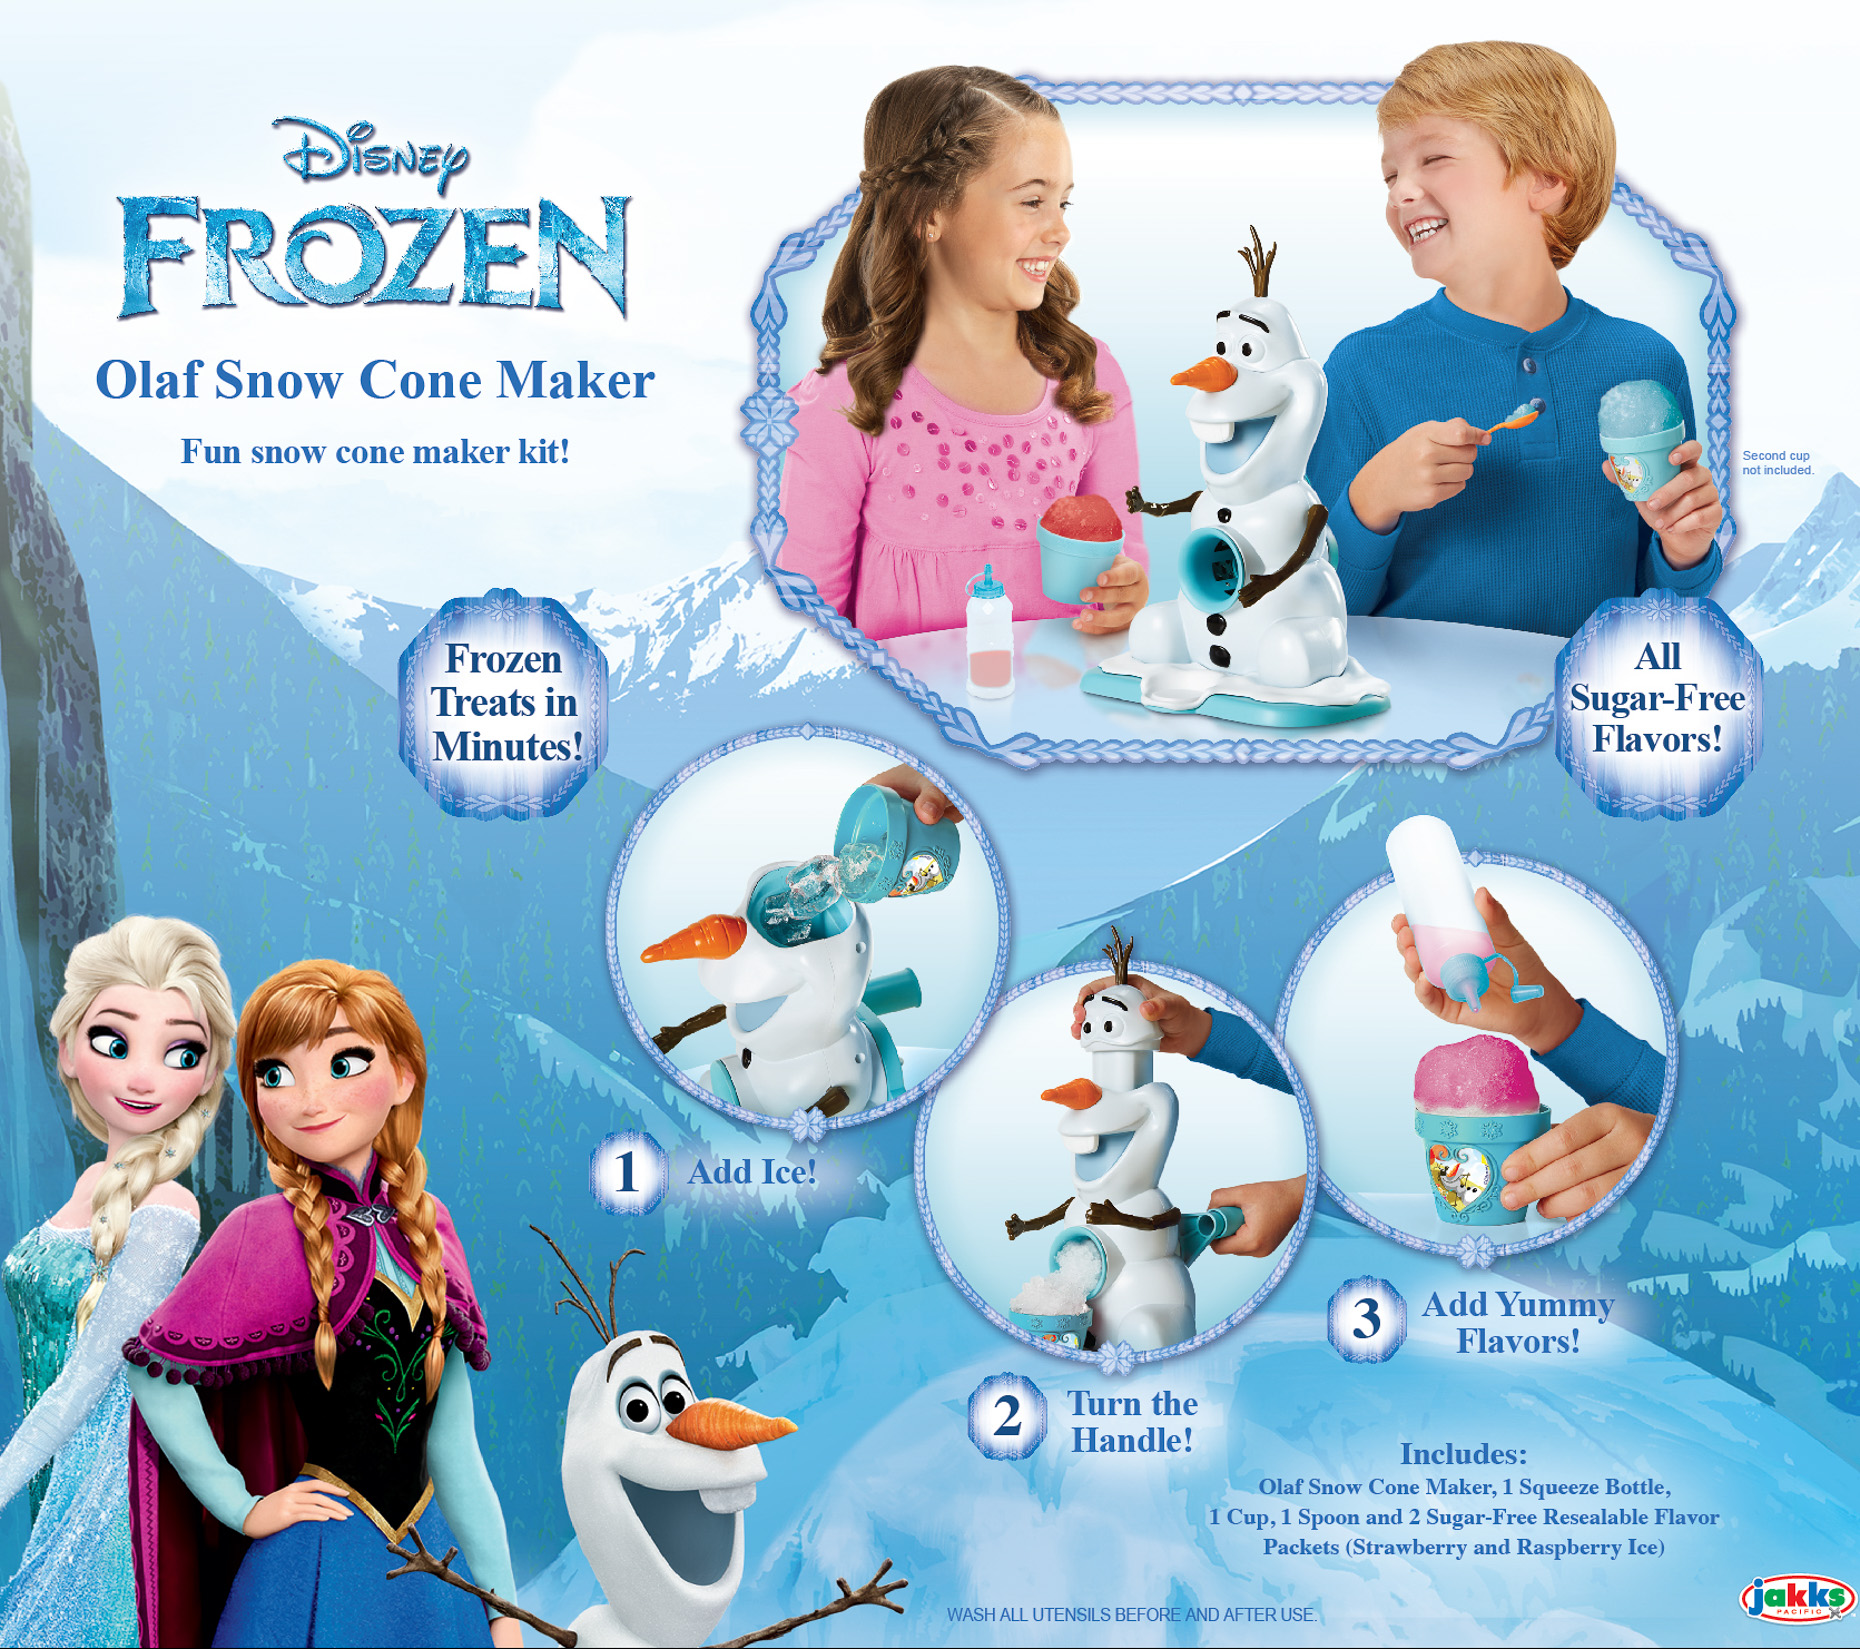 Frozen_82098_Olaf Snow Cone Maker_CB_F14_BERMAN_CS5